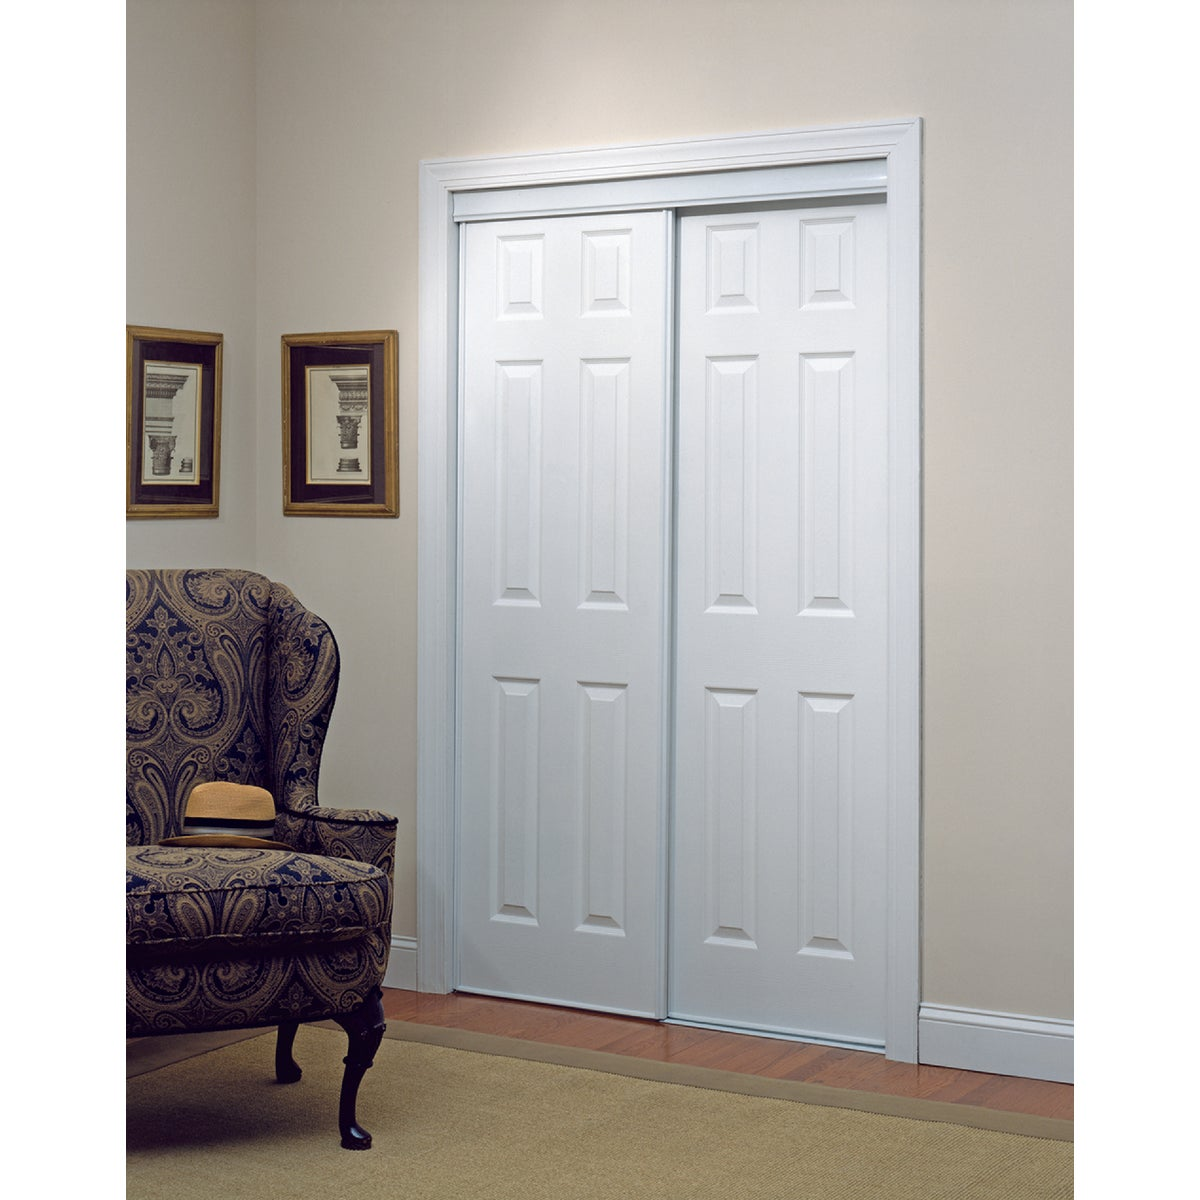 60X80 6-PNL BYPASS DOOR - 24-0011 by Home Decor Innov